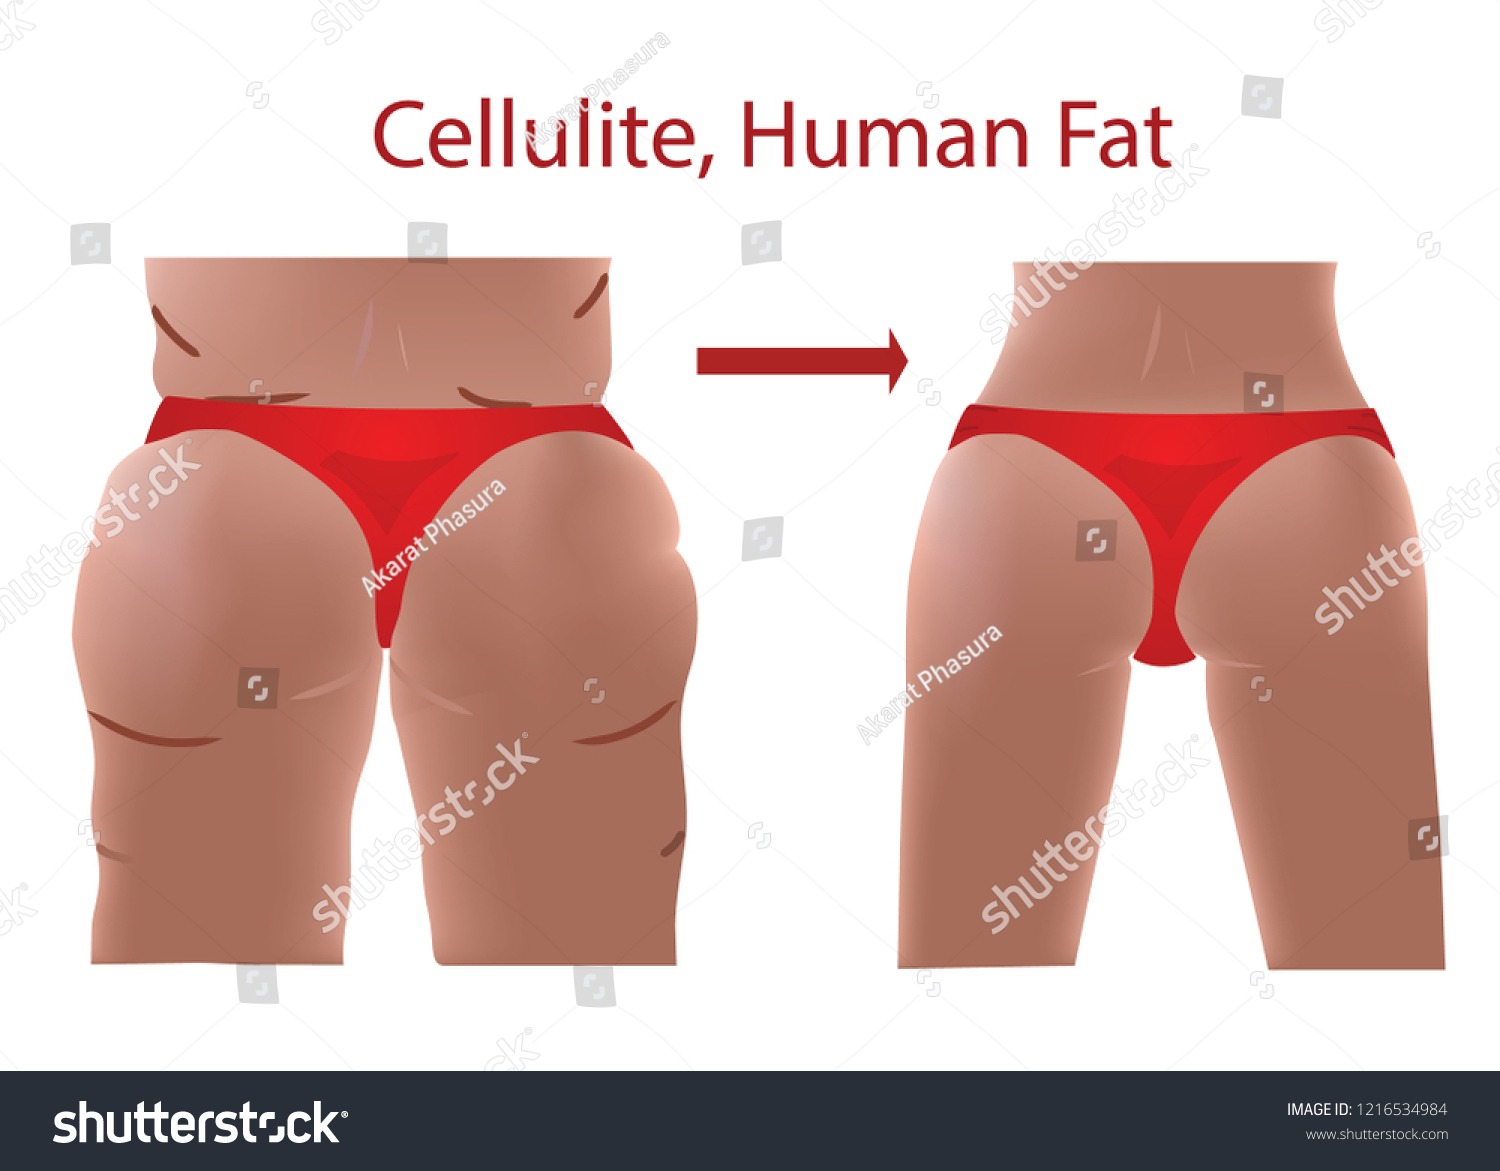 Fat female body with cellulite, Human Fat, Before and After with Fit body,